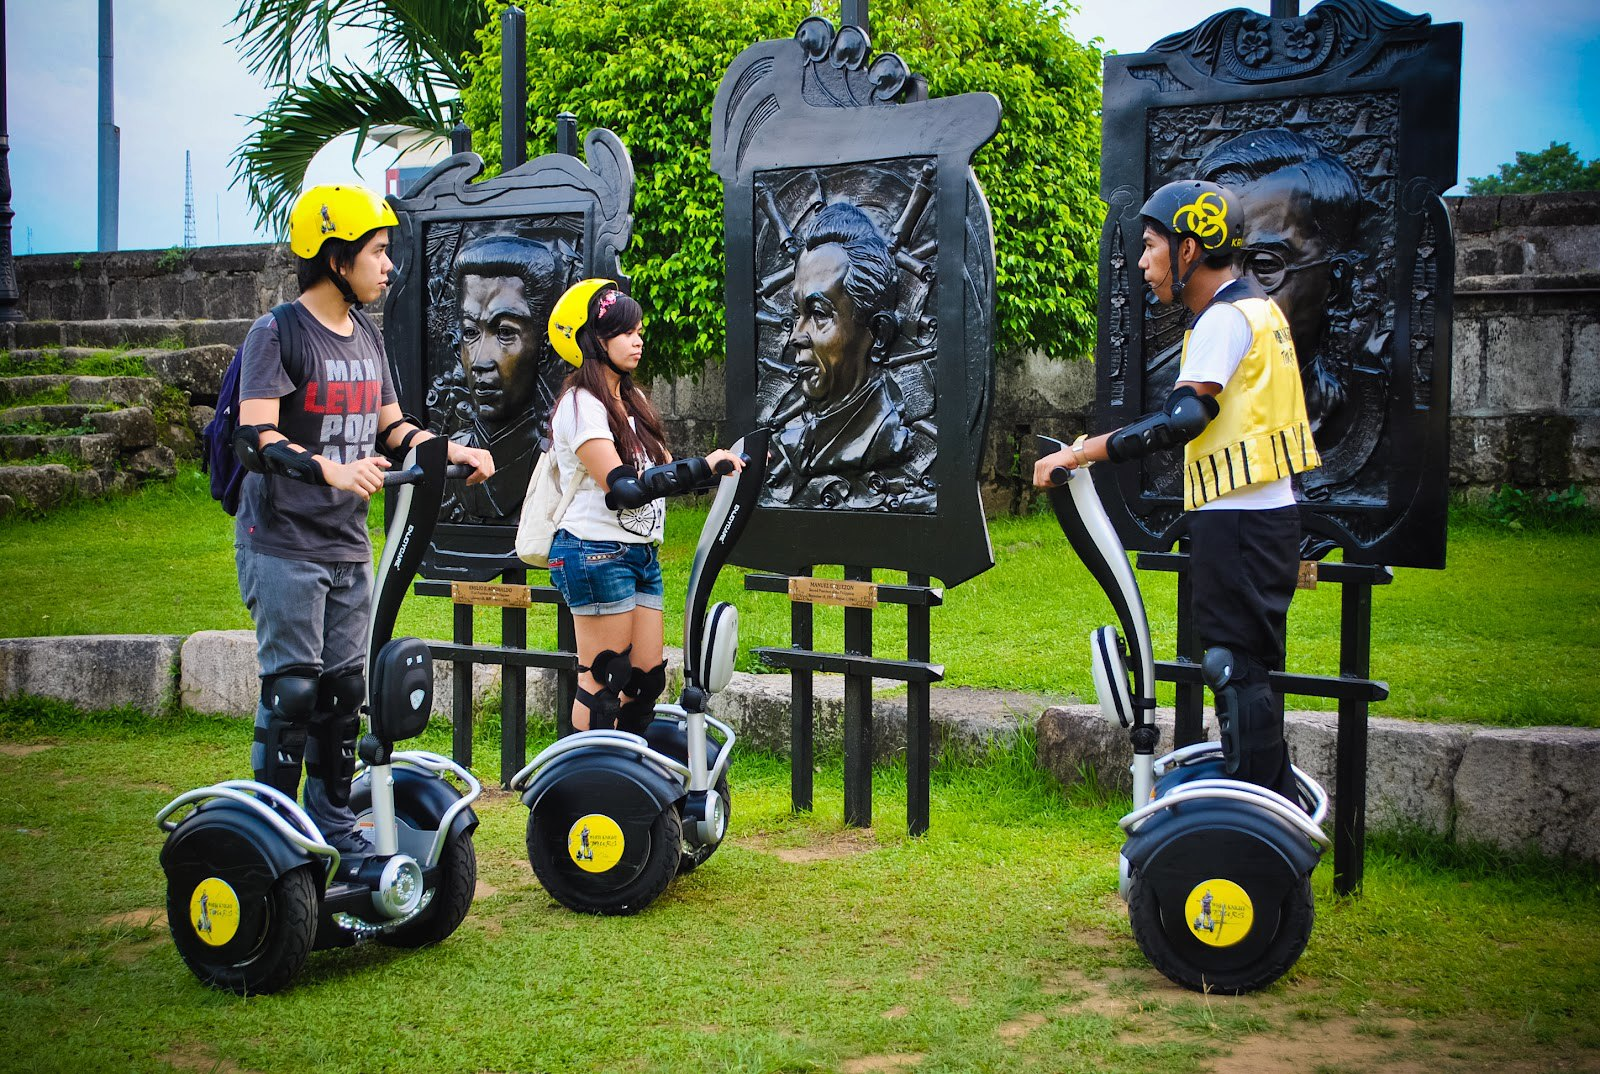 Intramuros things to do - White Knights Electric Chariots